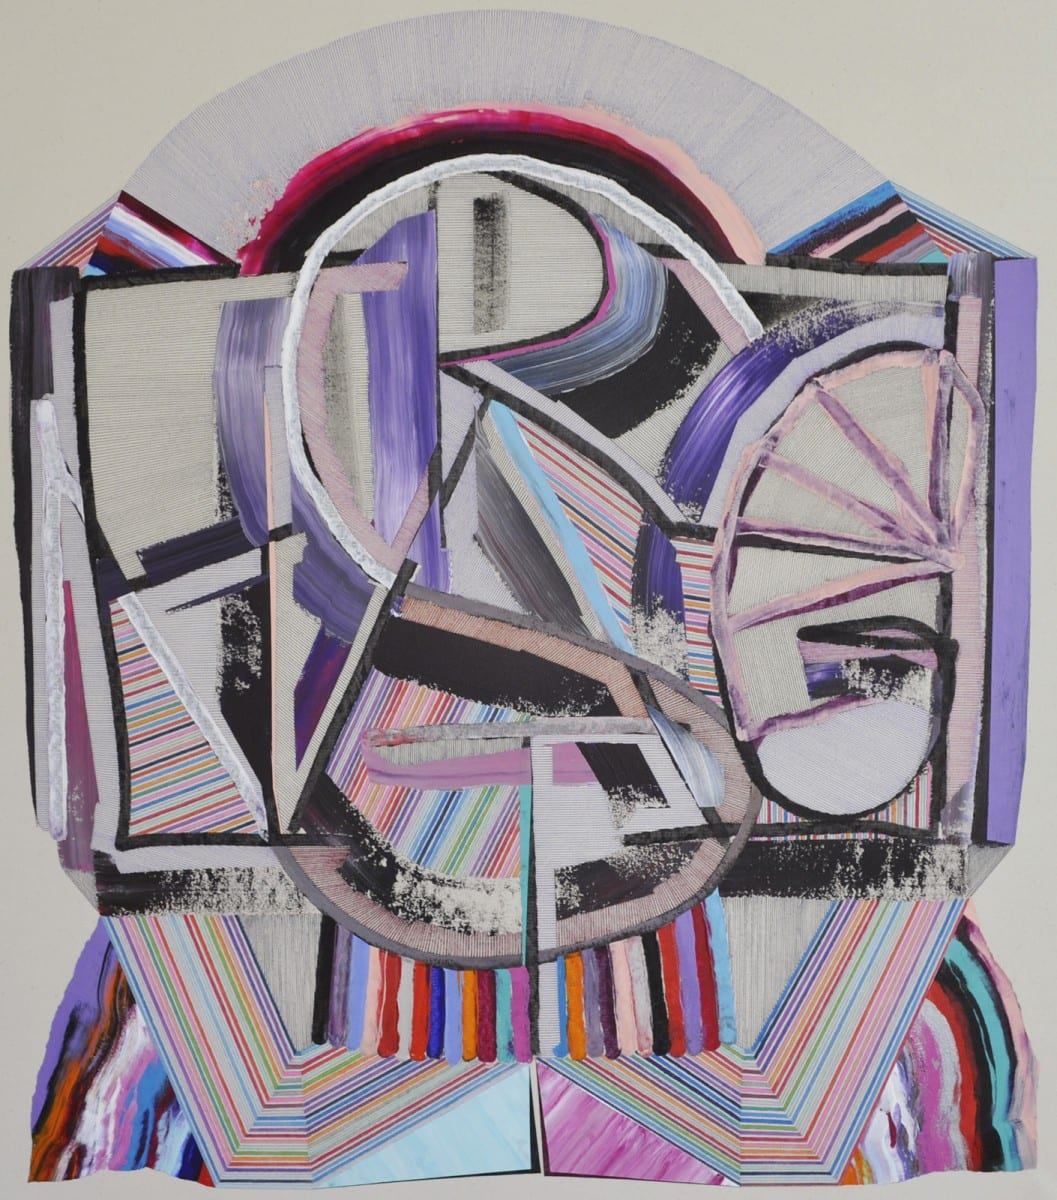 "Feodor Voronov, Estrange, acrylic, marker and ballpoint pen on canvas, 31"" x 29"", 2012"